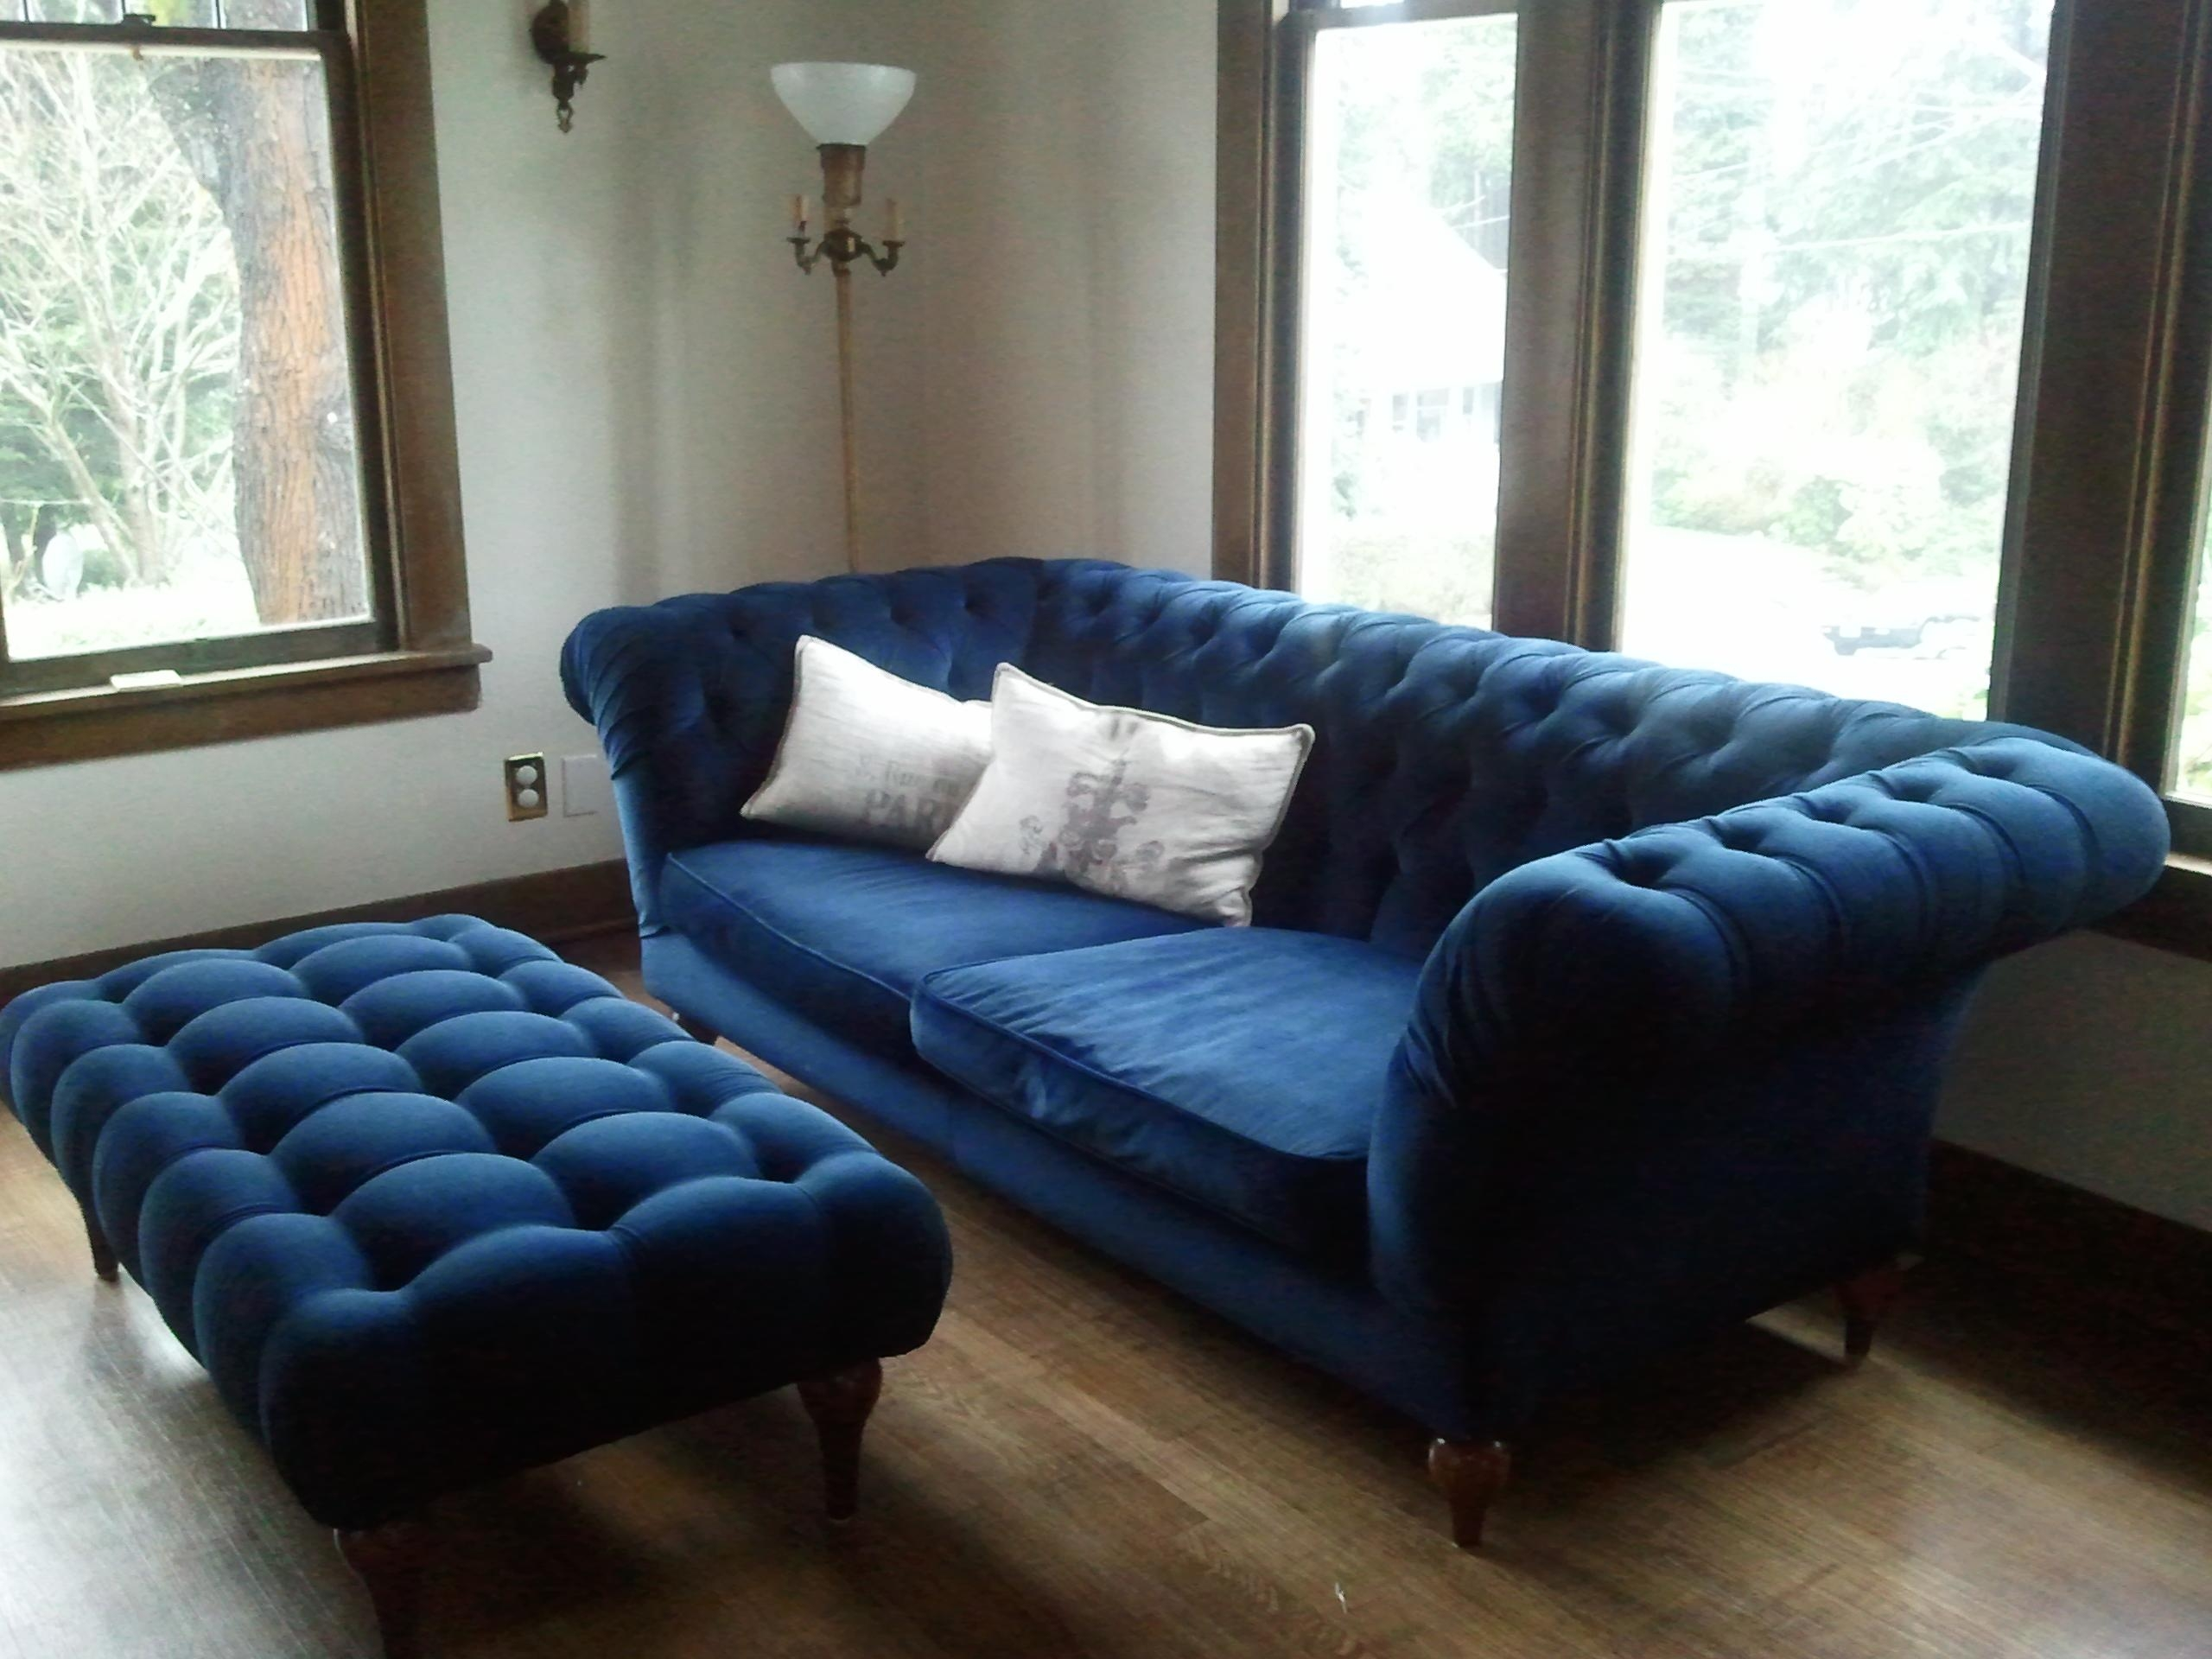 Furniture: Tufted Couch | Velvet Sectional Sofa | Blue Velvet In Blue Velvet Tufted Sofas (Image 13 of 20)